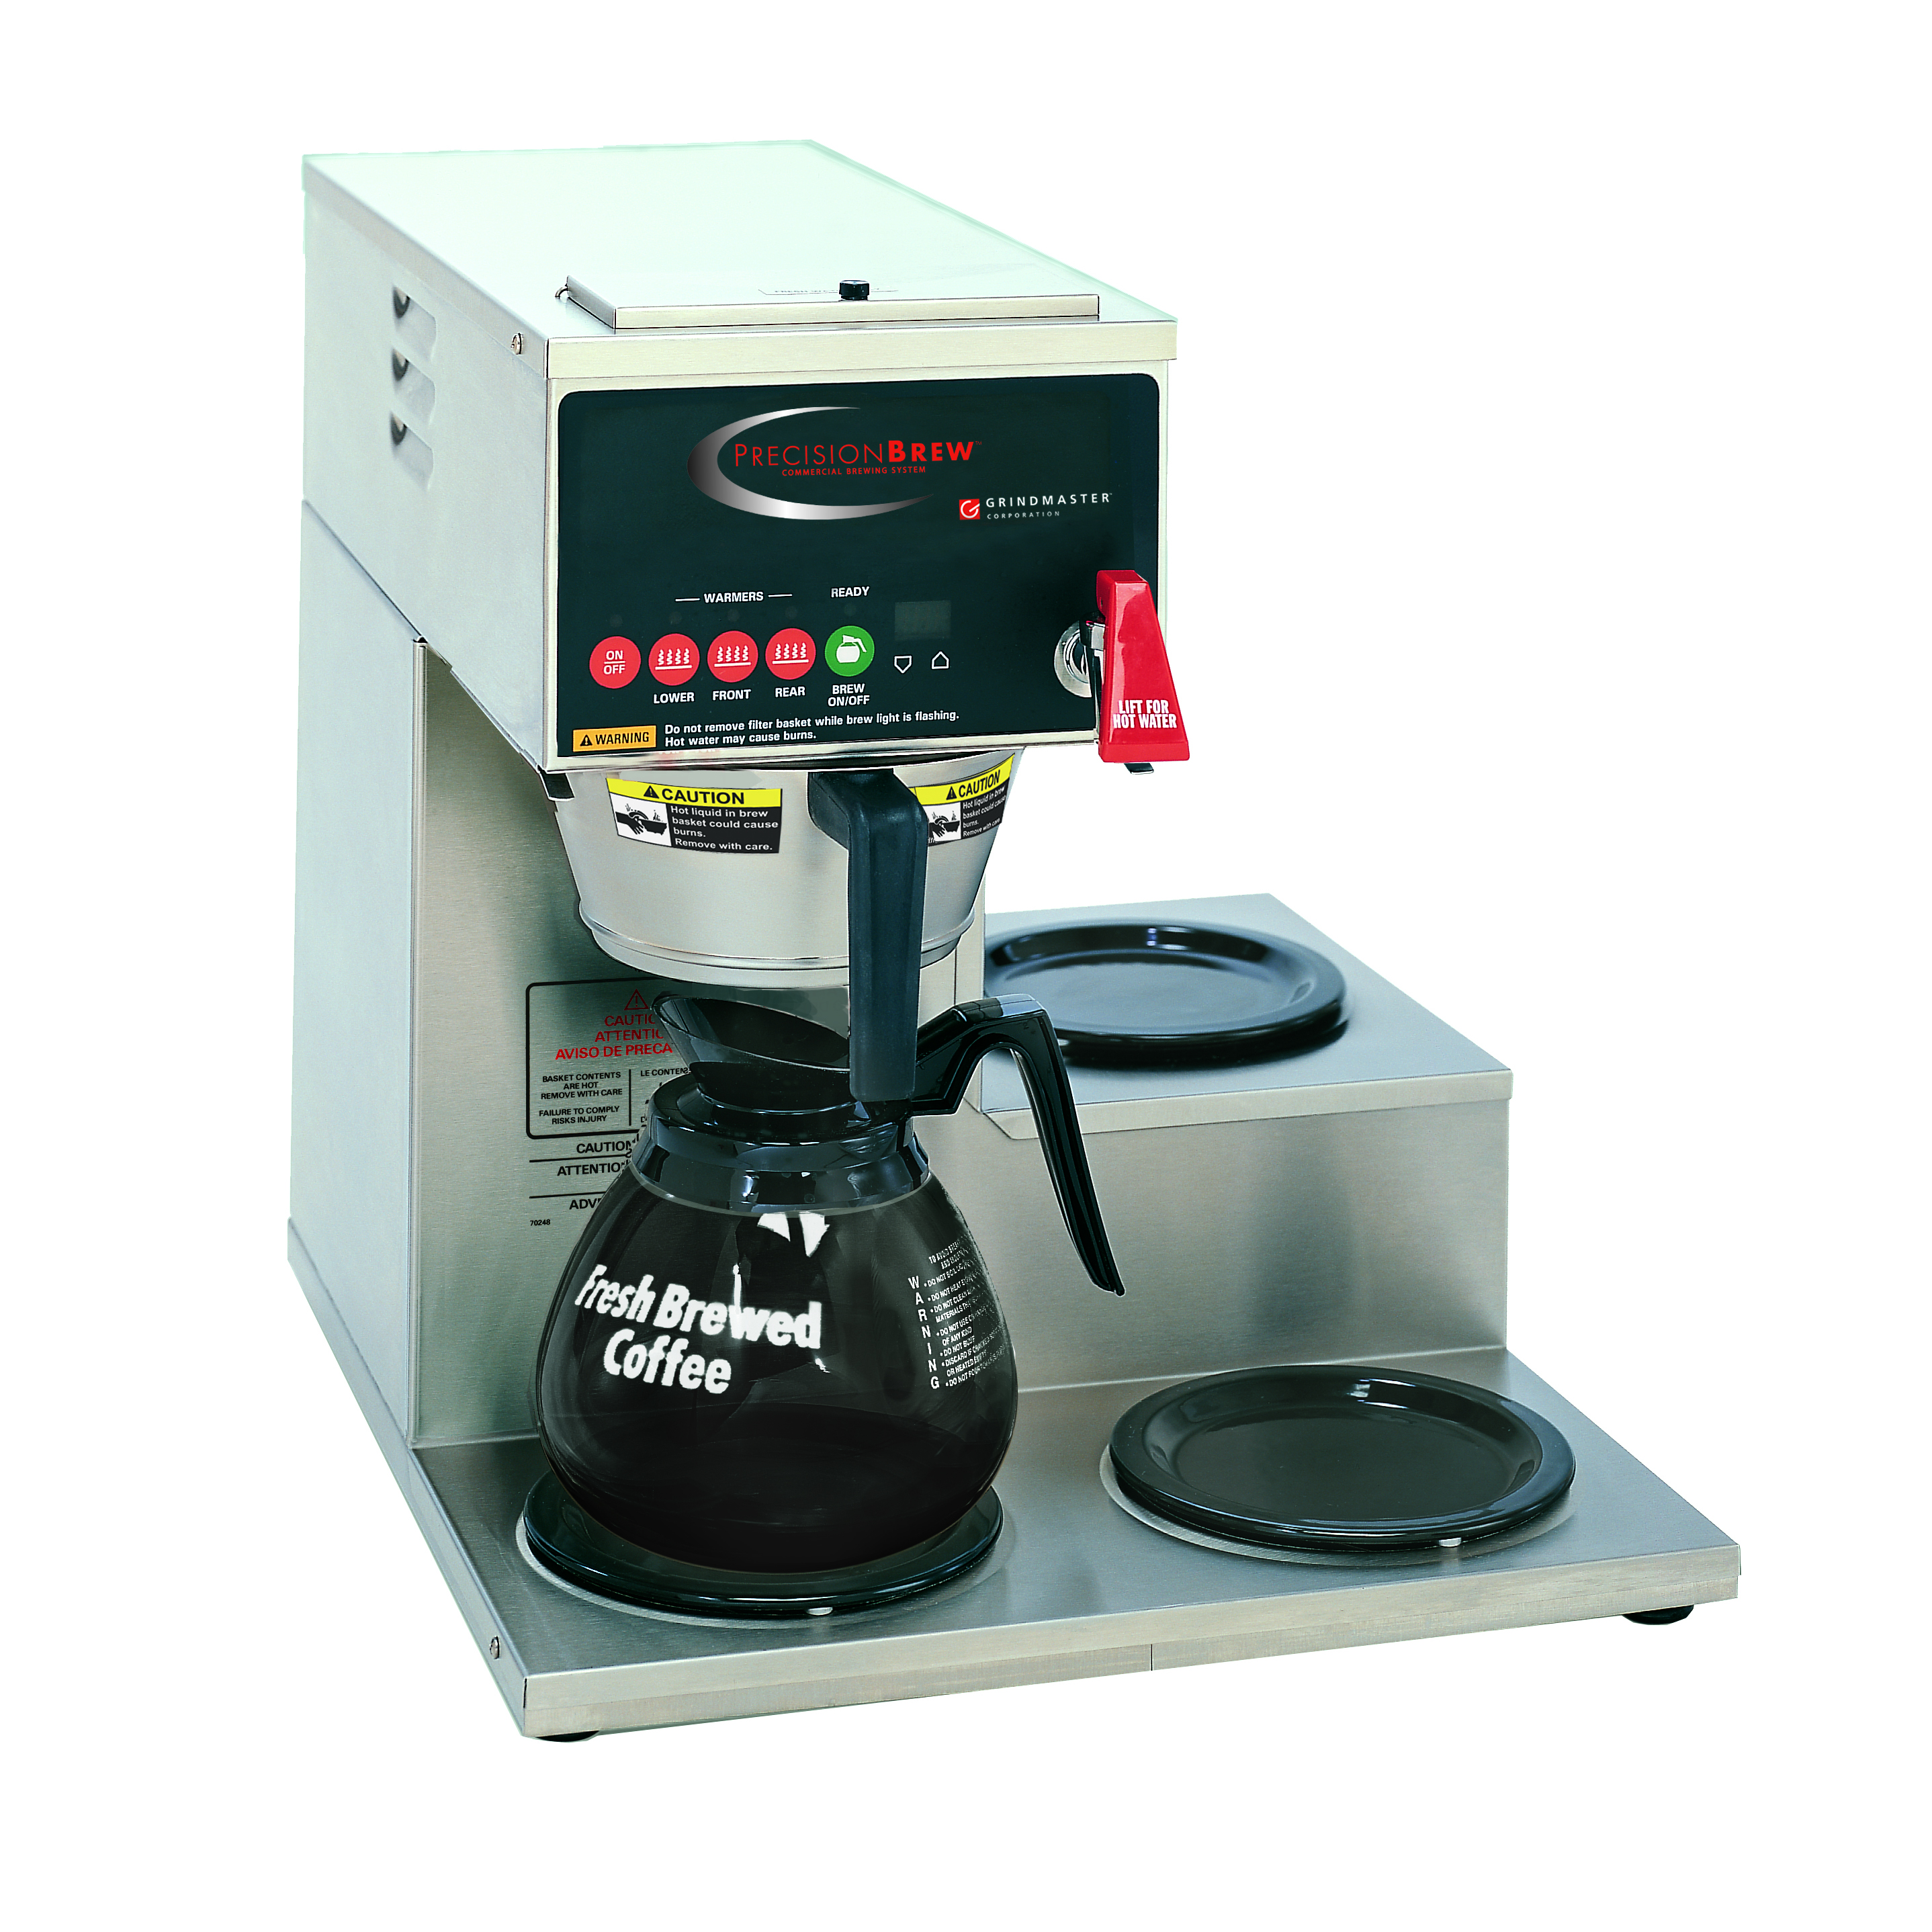 Grindmaster-Cecilware B-3WR coffee brewer for decanters